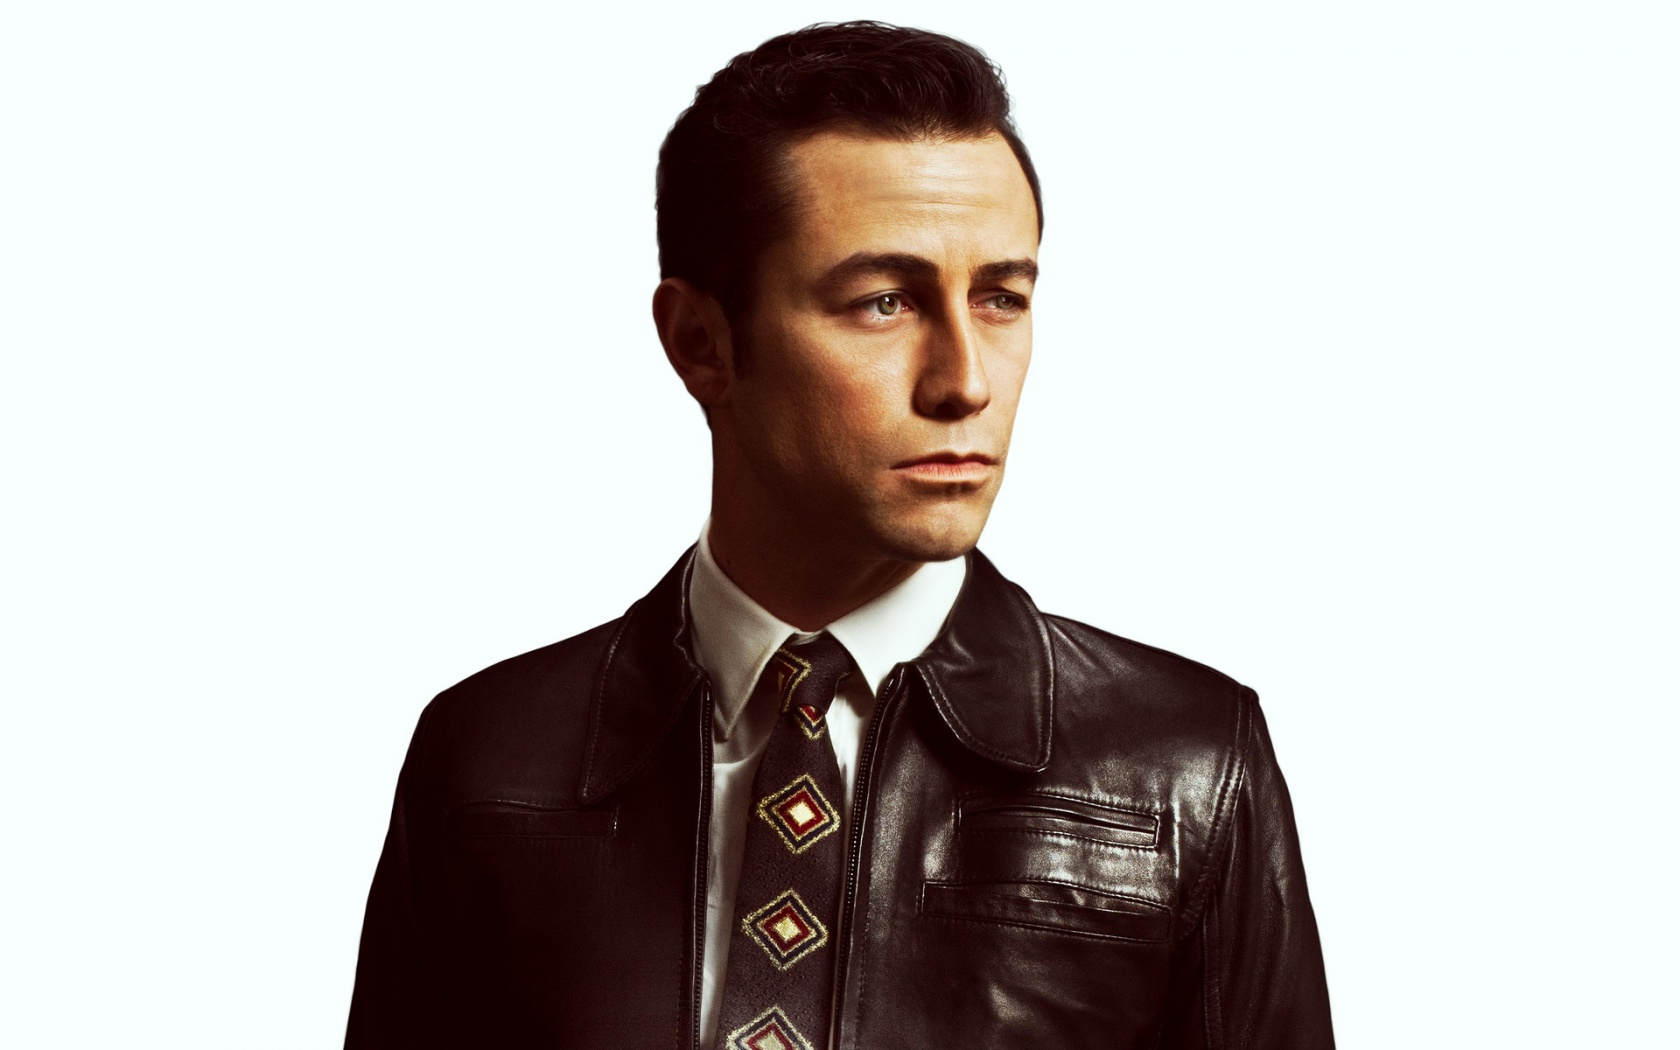 15 HD Joseph Gordon Levitt Wallpapers джозеф гордон левитт